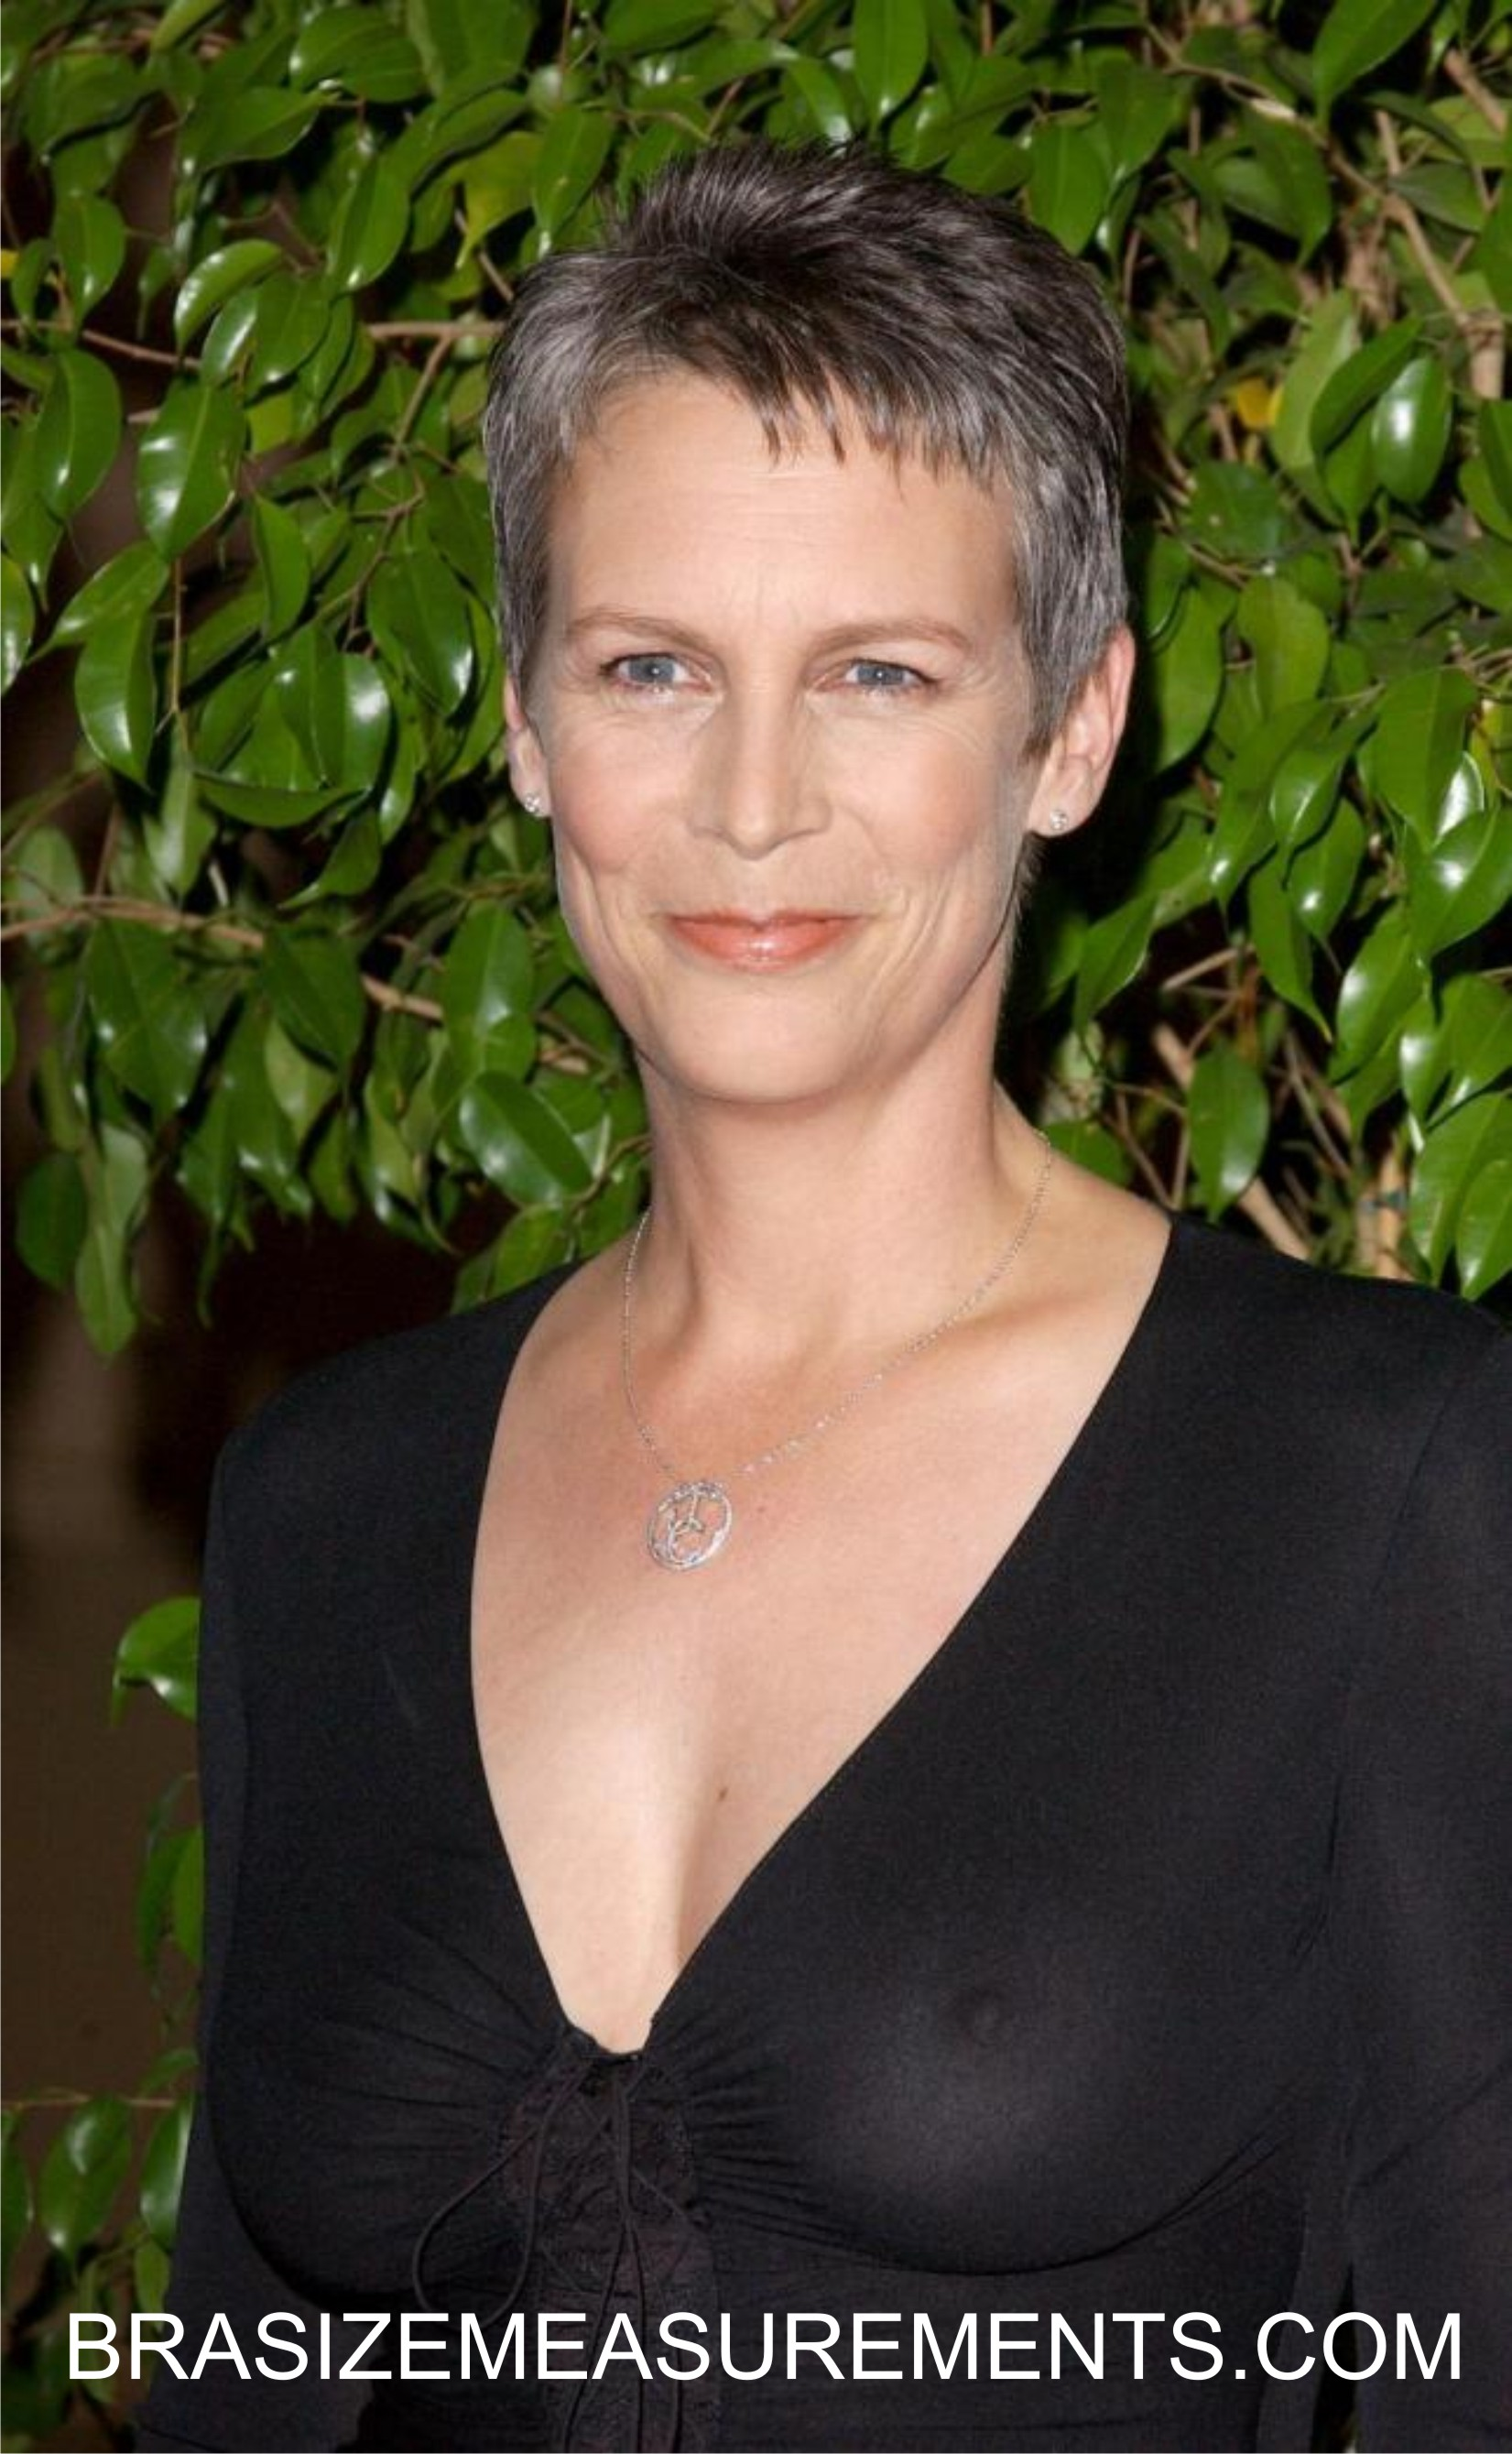 Jamie Lee Curtis Bra Size